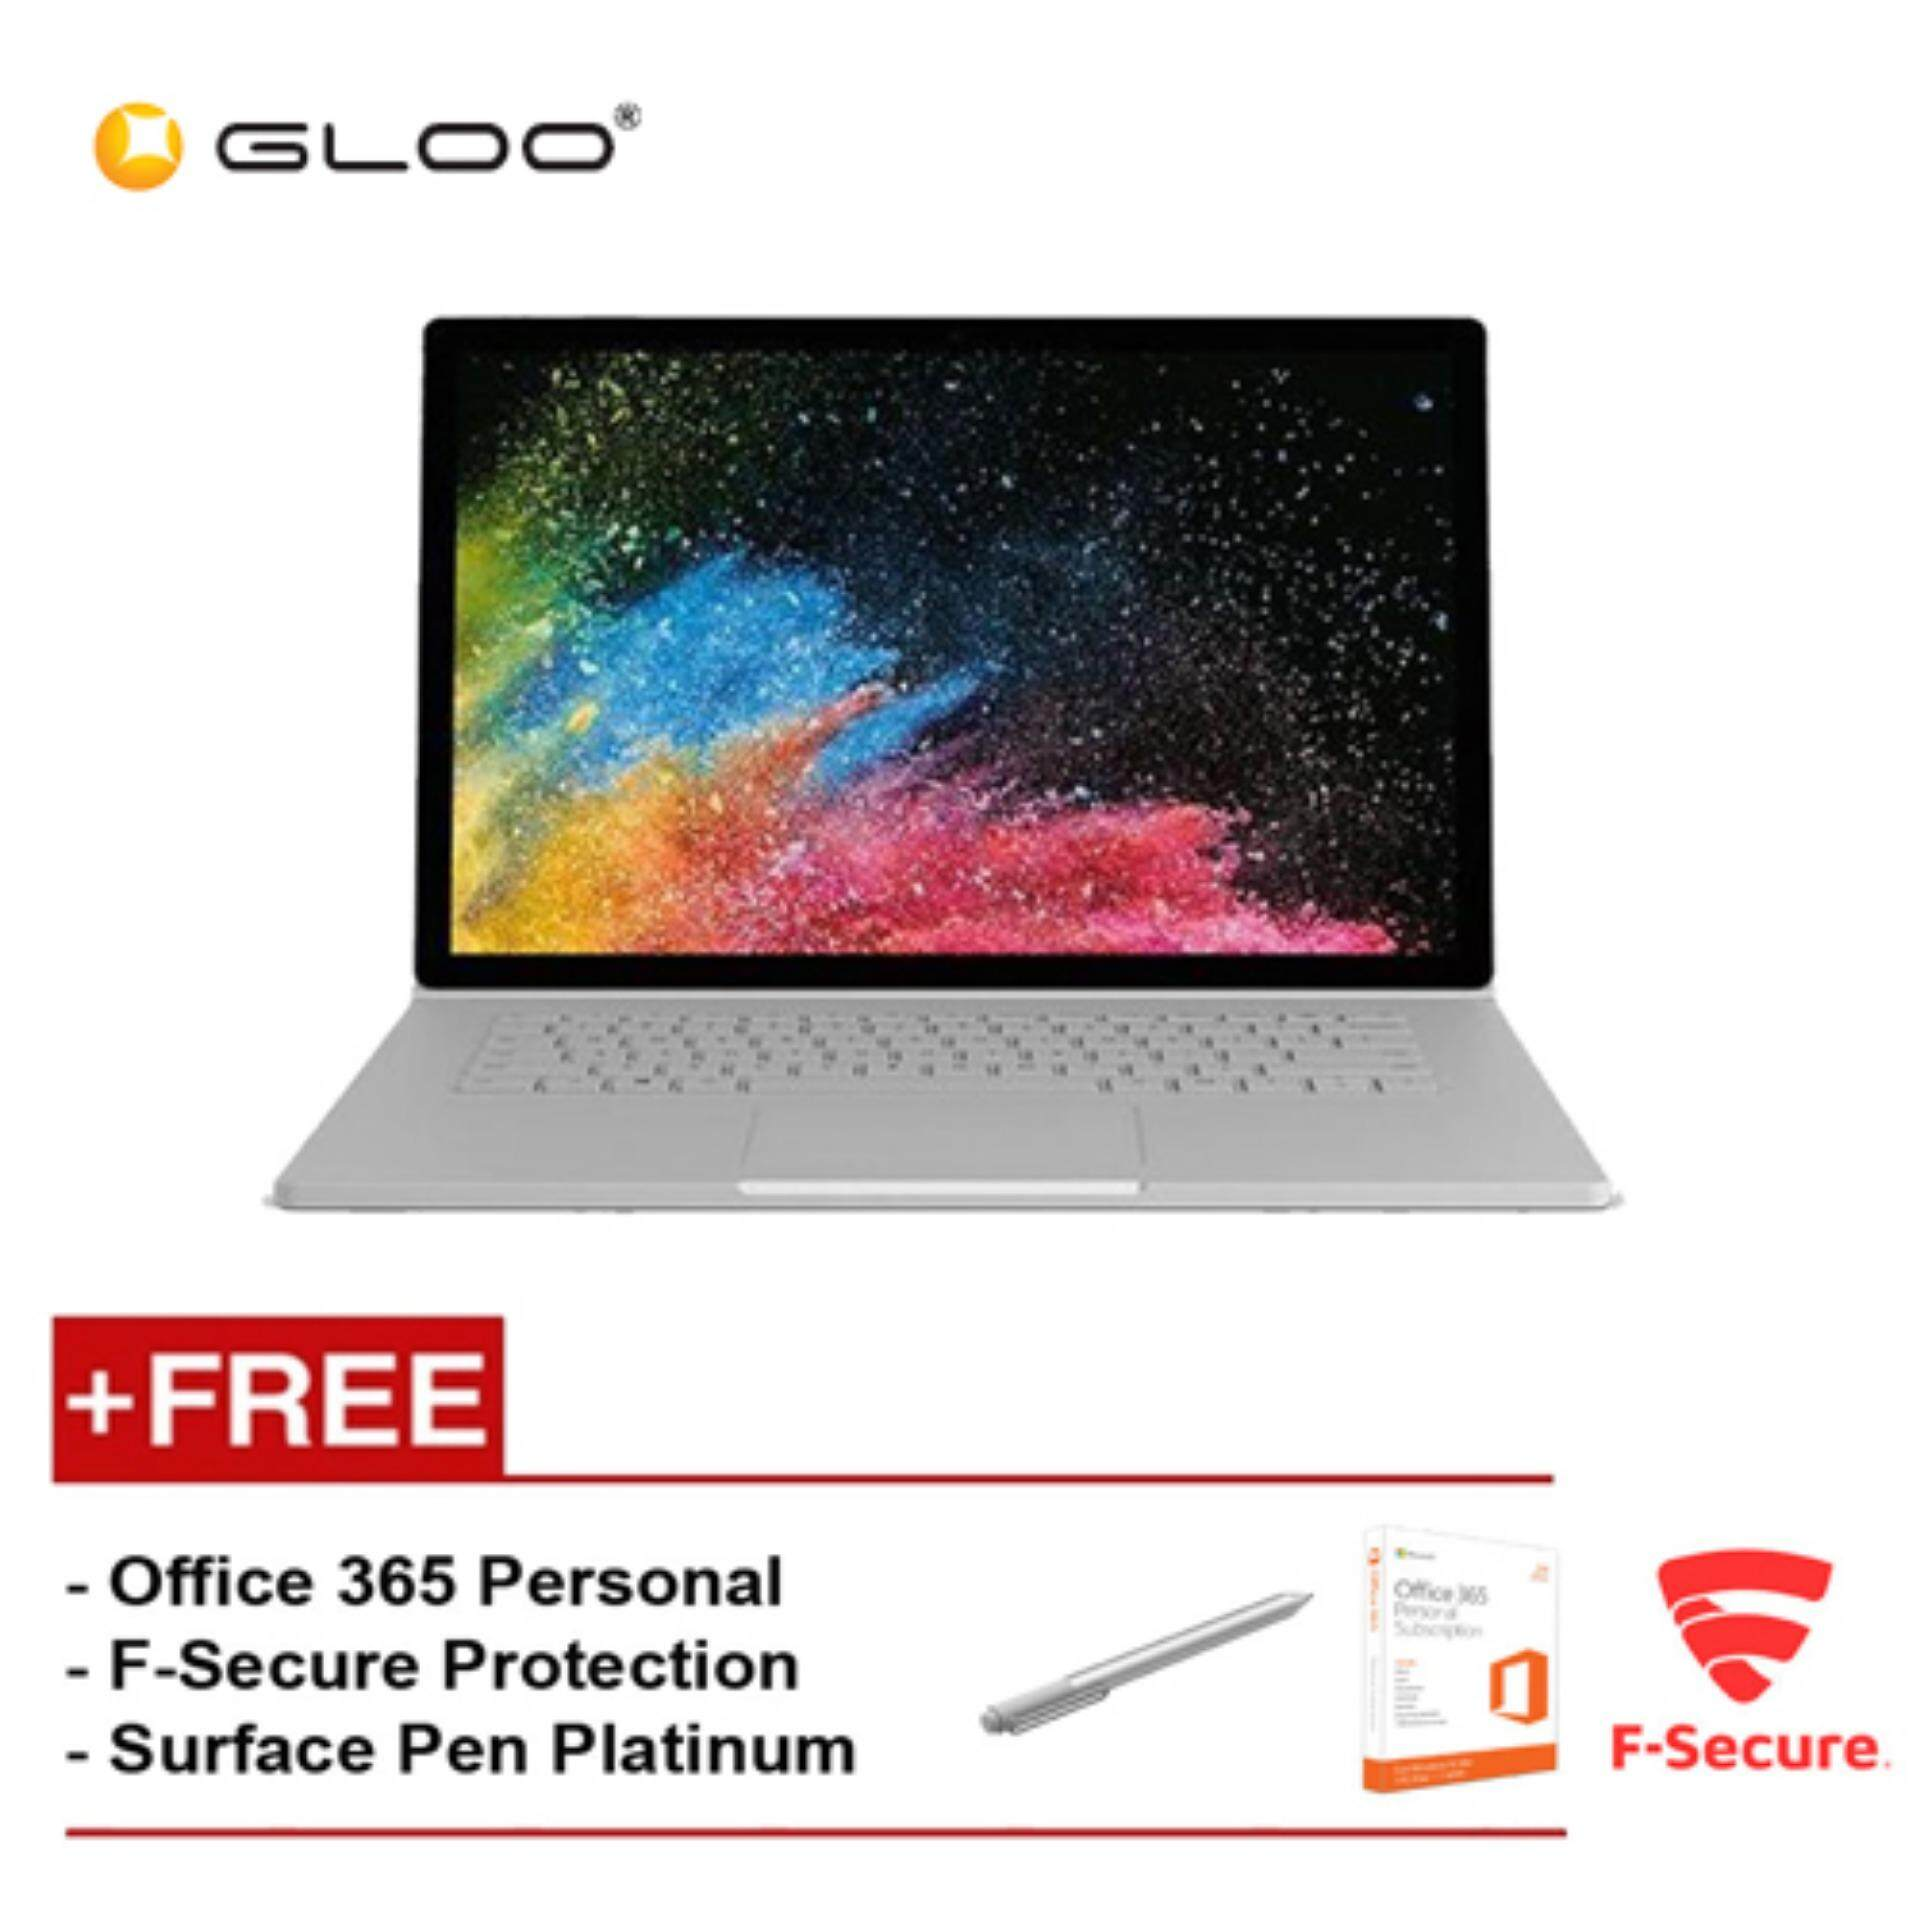 Surface Book 2 13 Core i5/8GB RAM - 256GB [FREE F-Secure End Point Protection + Off 365 Personal + Microsoft Surface Pen Platinum] Malaysia